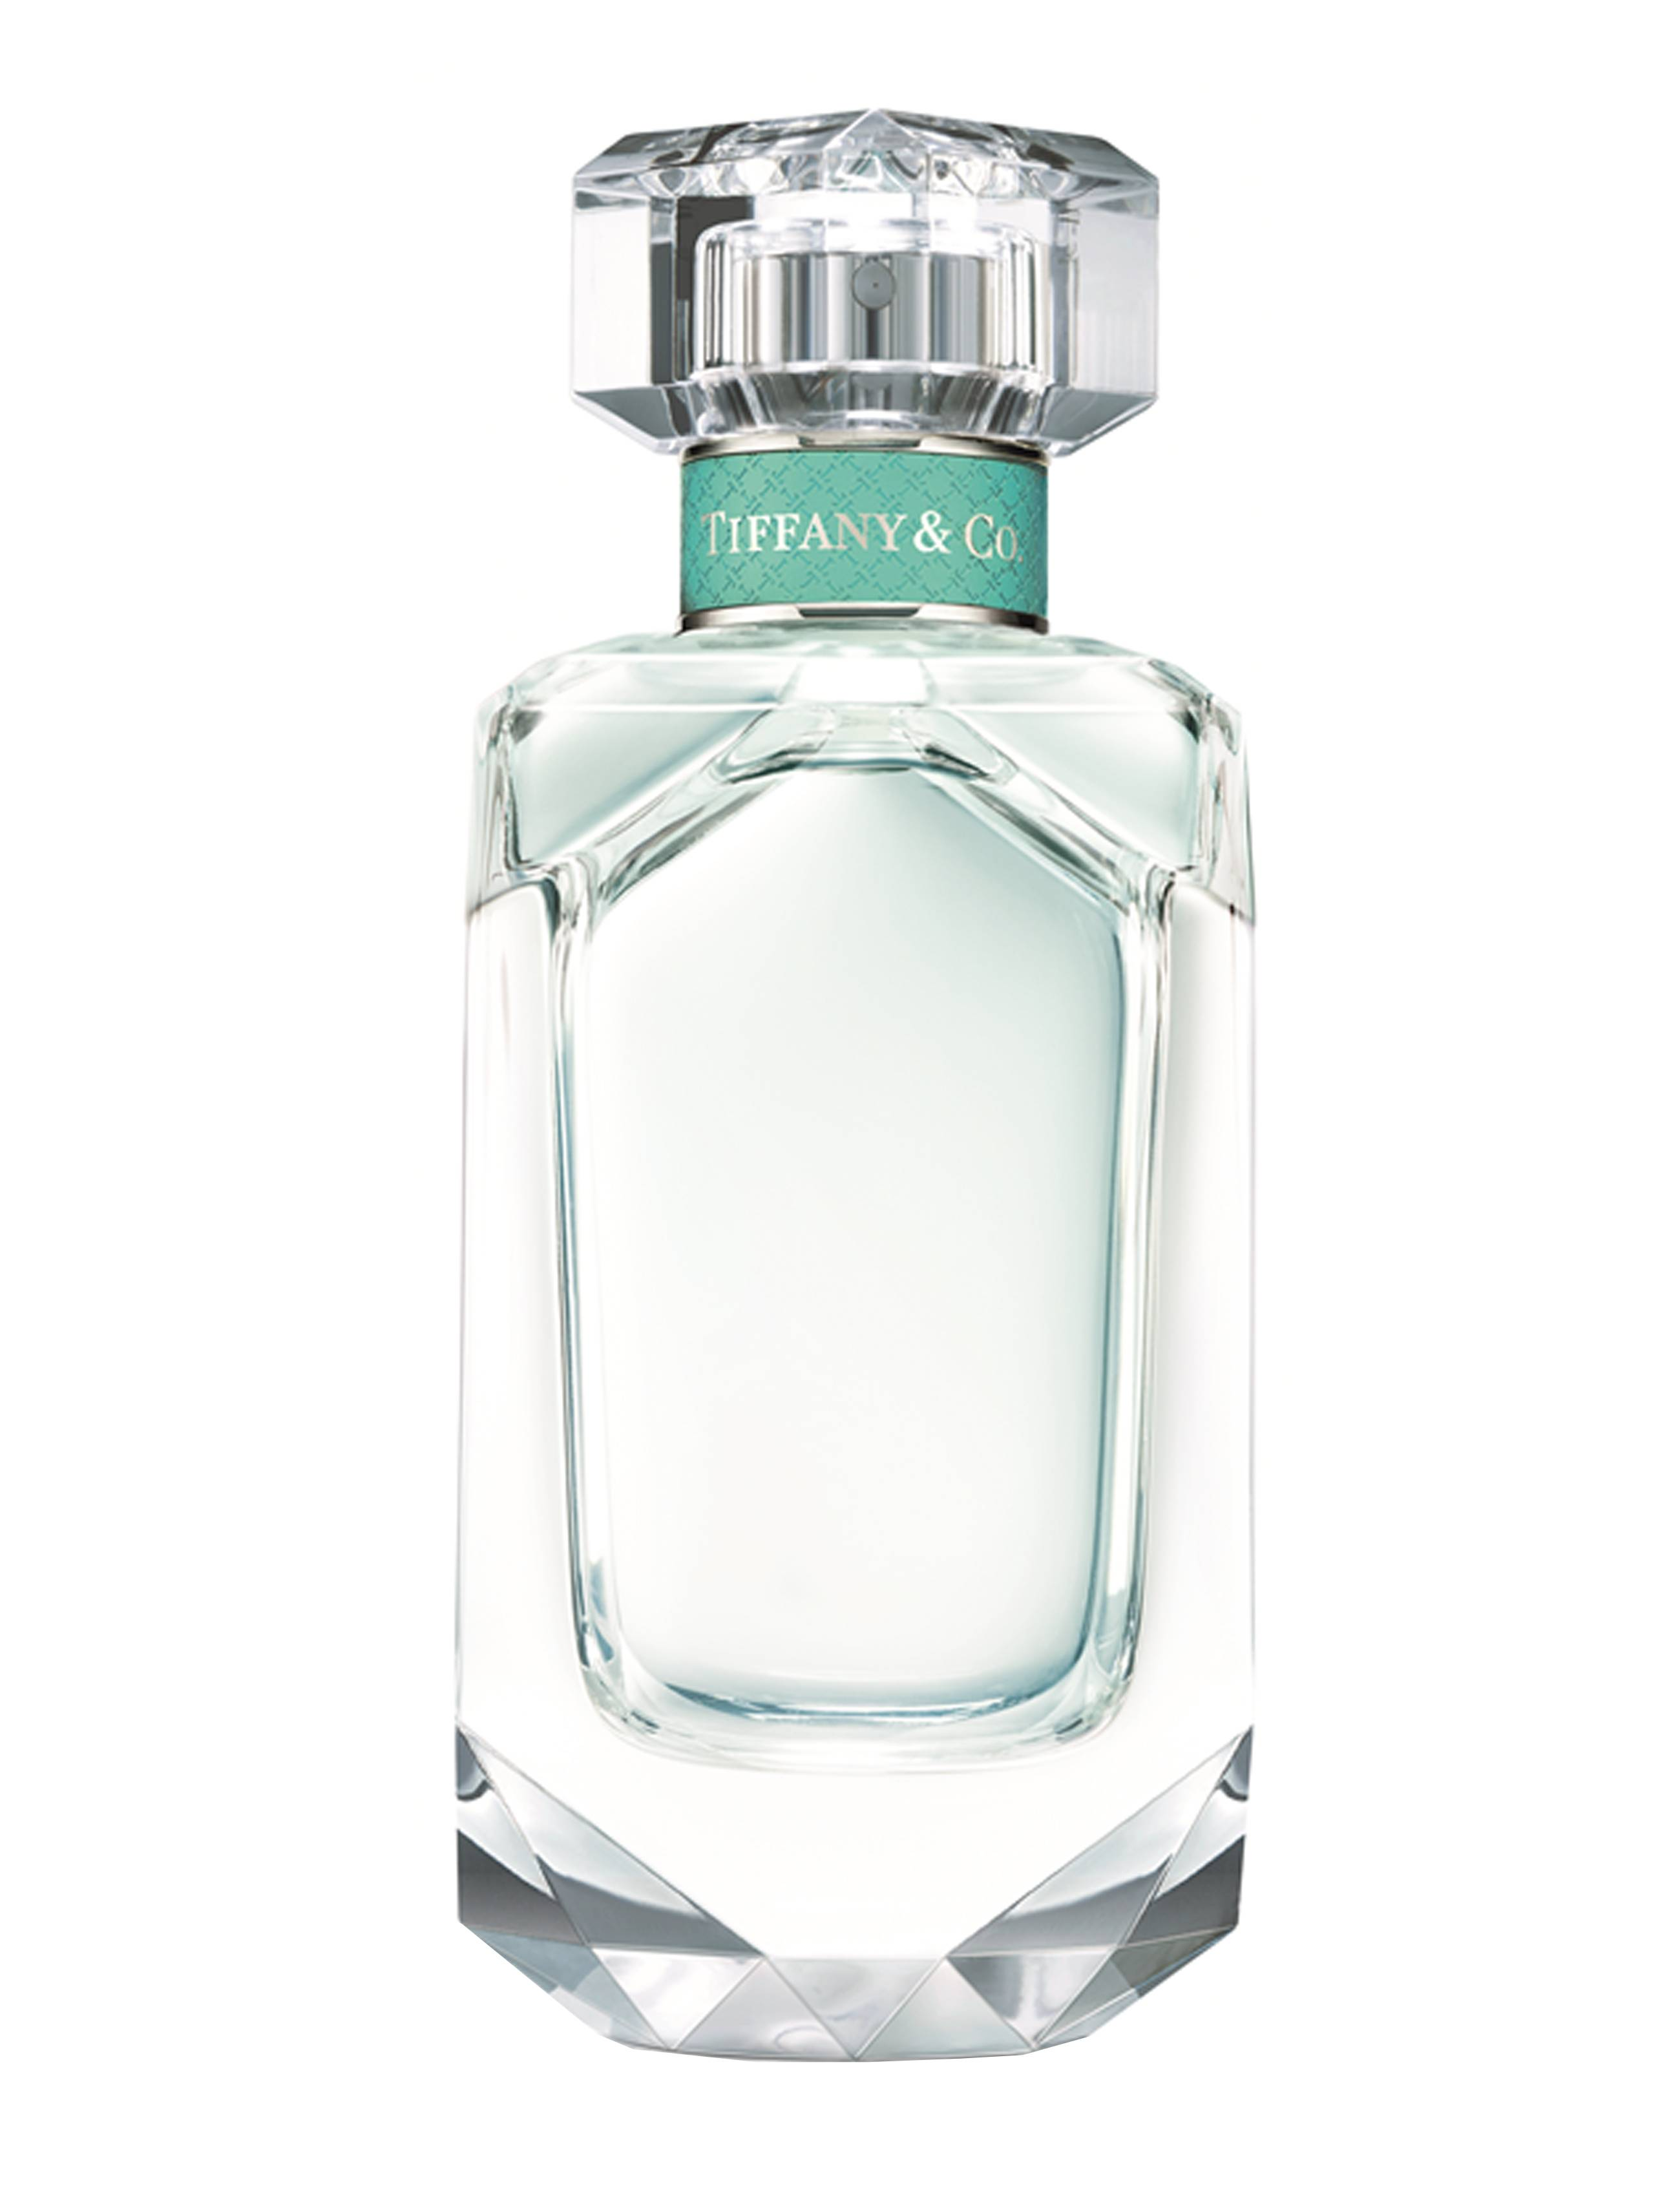 Tiffany & Co. Eau De Parfum 50 ml